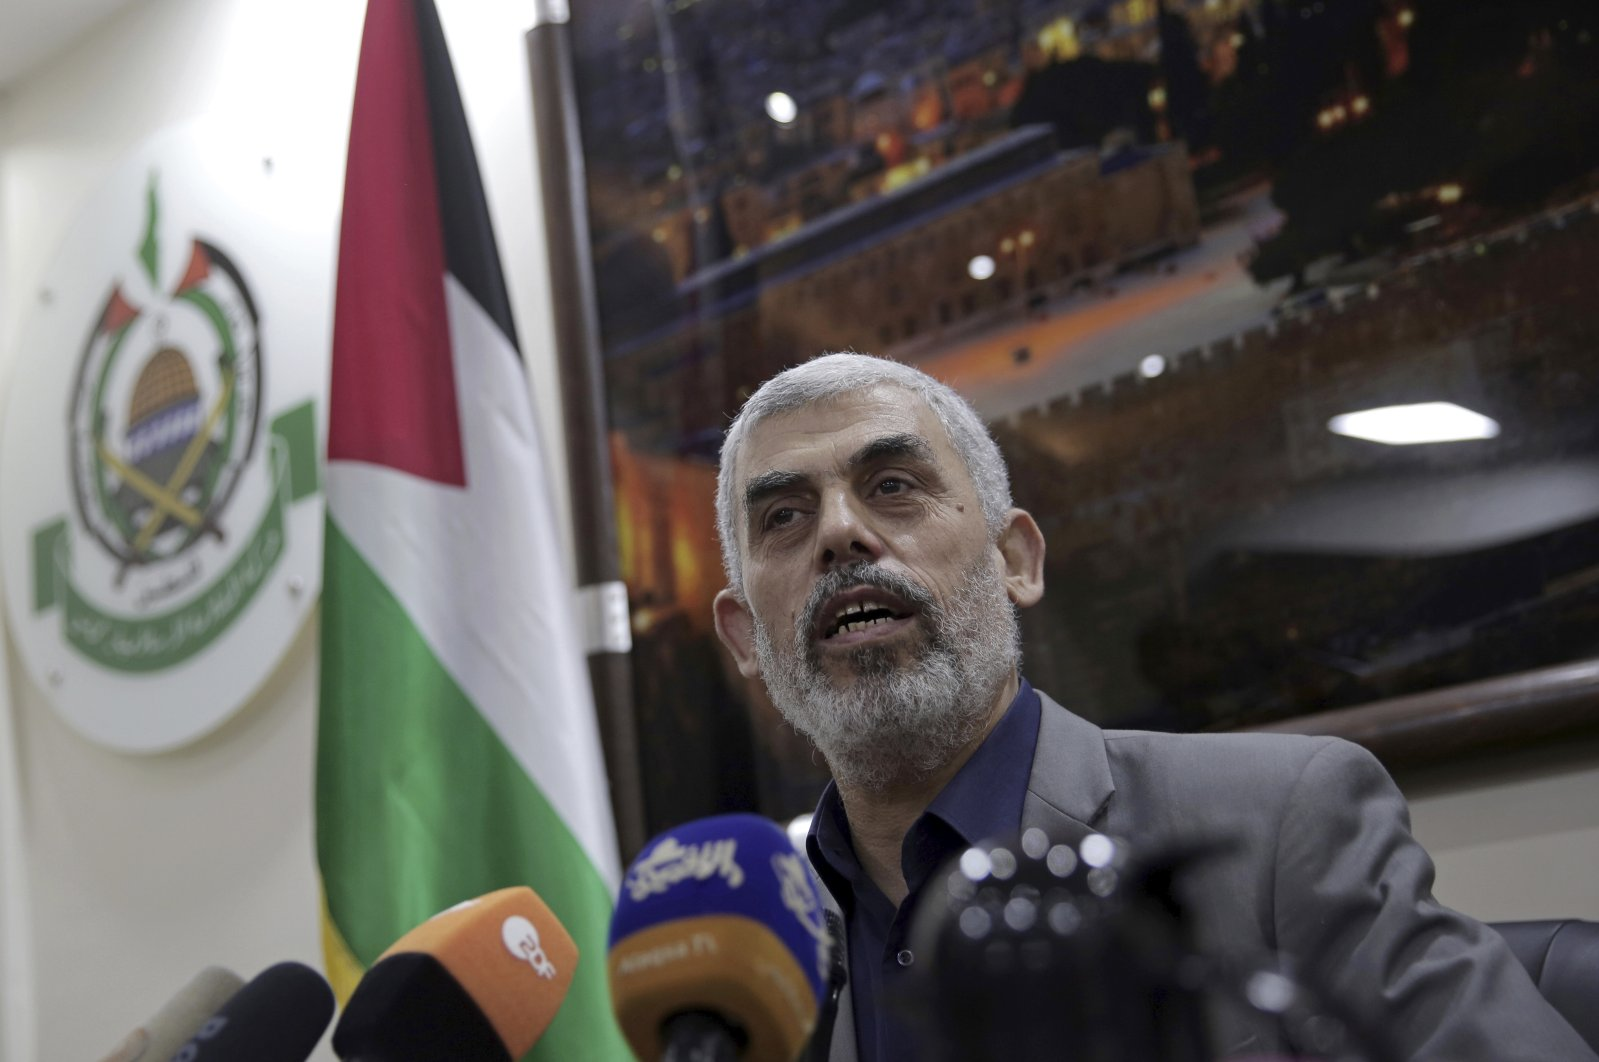 Yehiyeh Sinwar, the Hamas resistance group's leader in the Gaza Strip, speaks to foreign correspondents, in his office in Gaza City, May 10, 2018. (AP Photo)